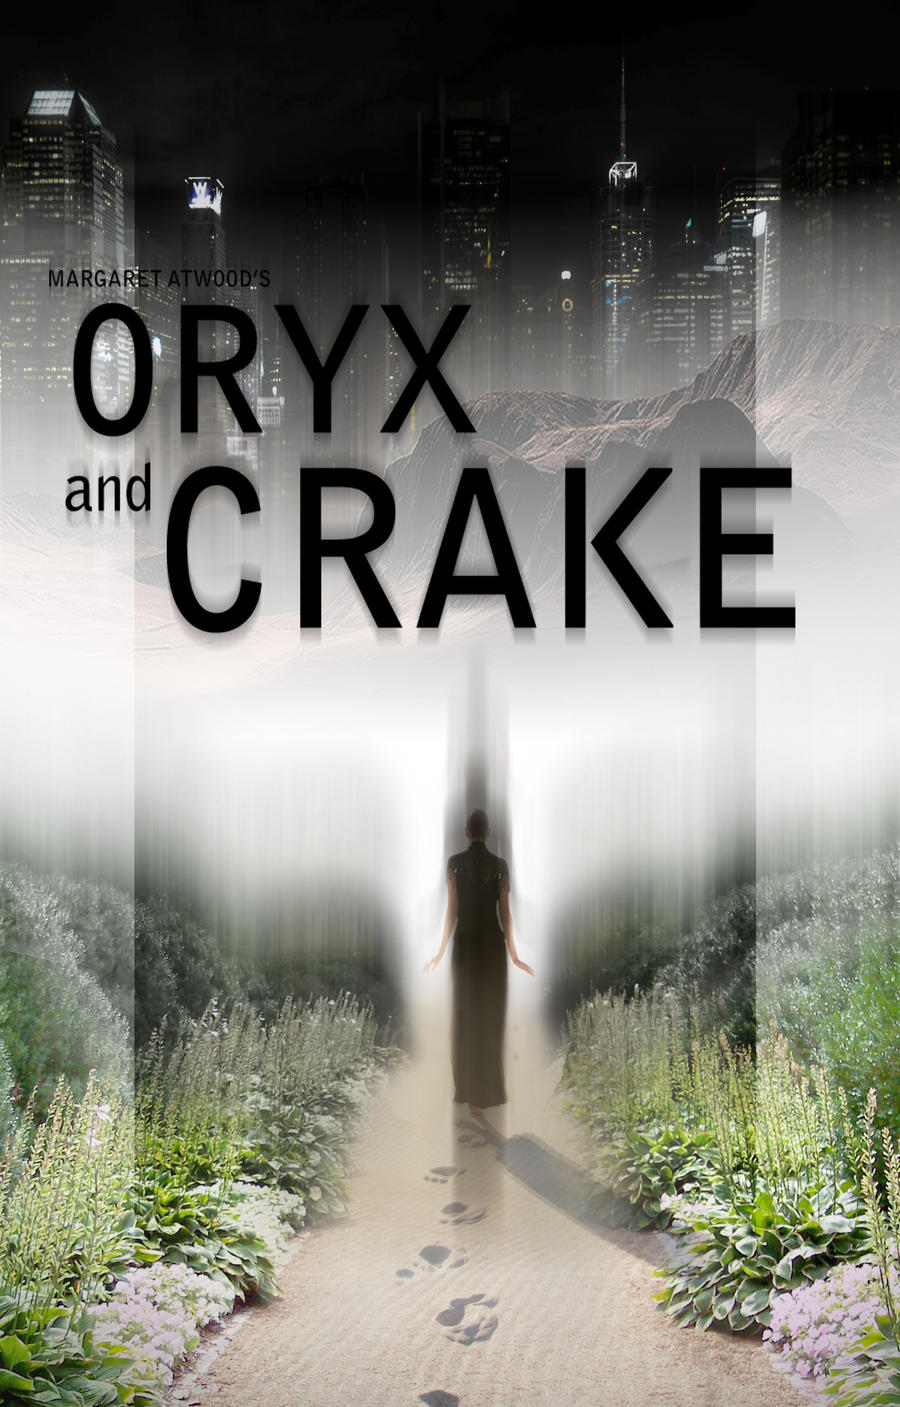 oryx and crake essays Length: 500 word minimum 1,000 word maximum in mla format, write an essay about margaret atwood's oryx and crake based on one of the following writing prompts.